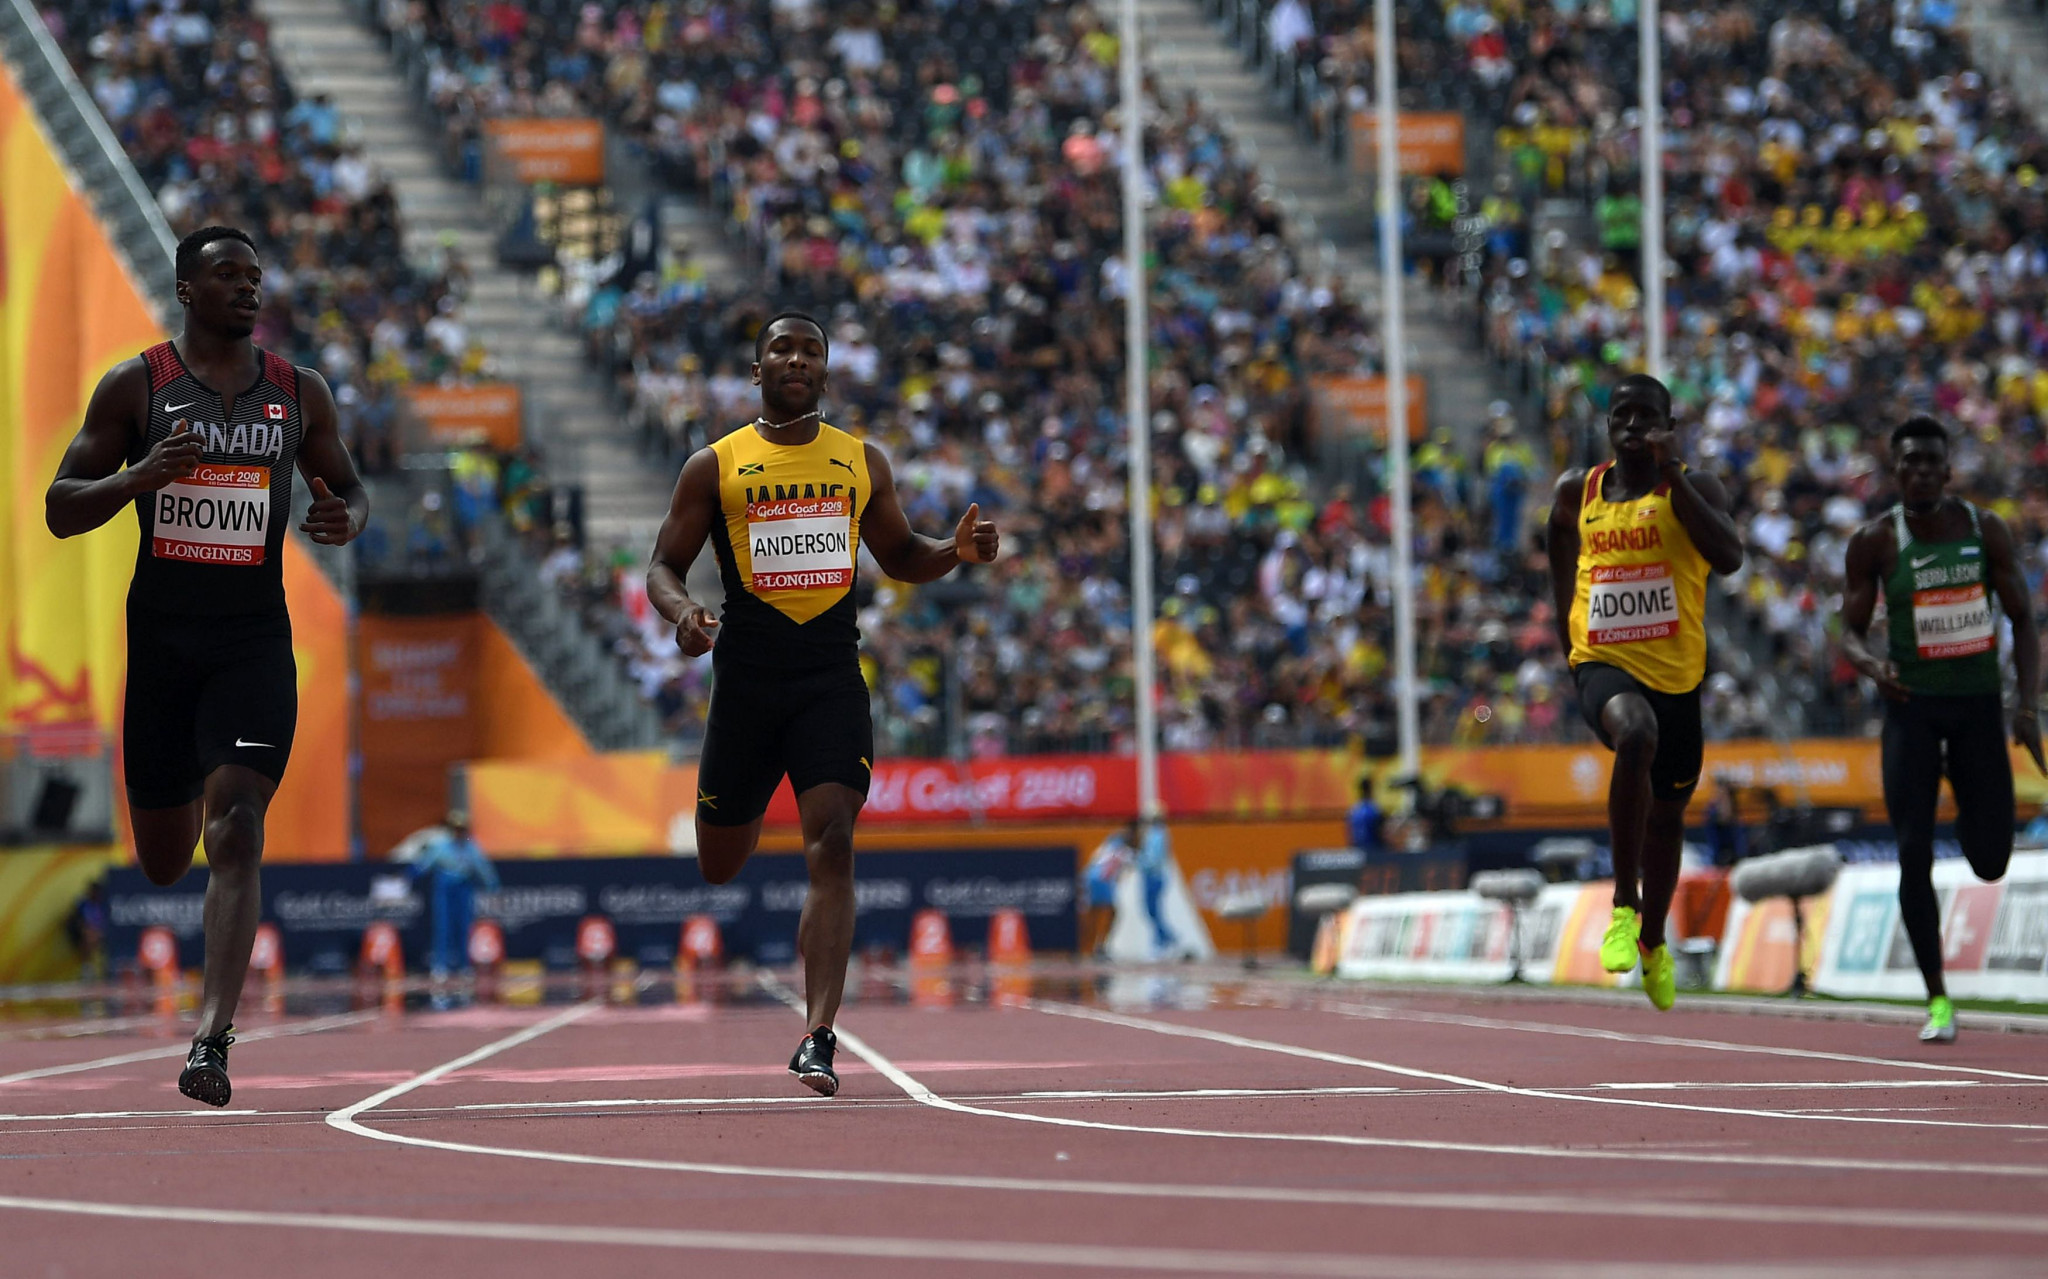 Commonwealth Games: It's Not Rare For Athletes To Go Missing